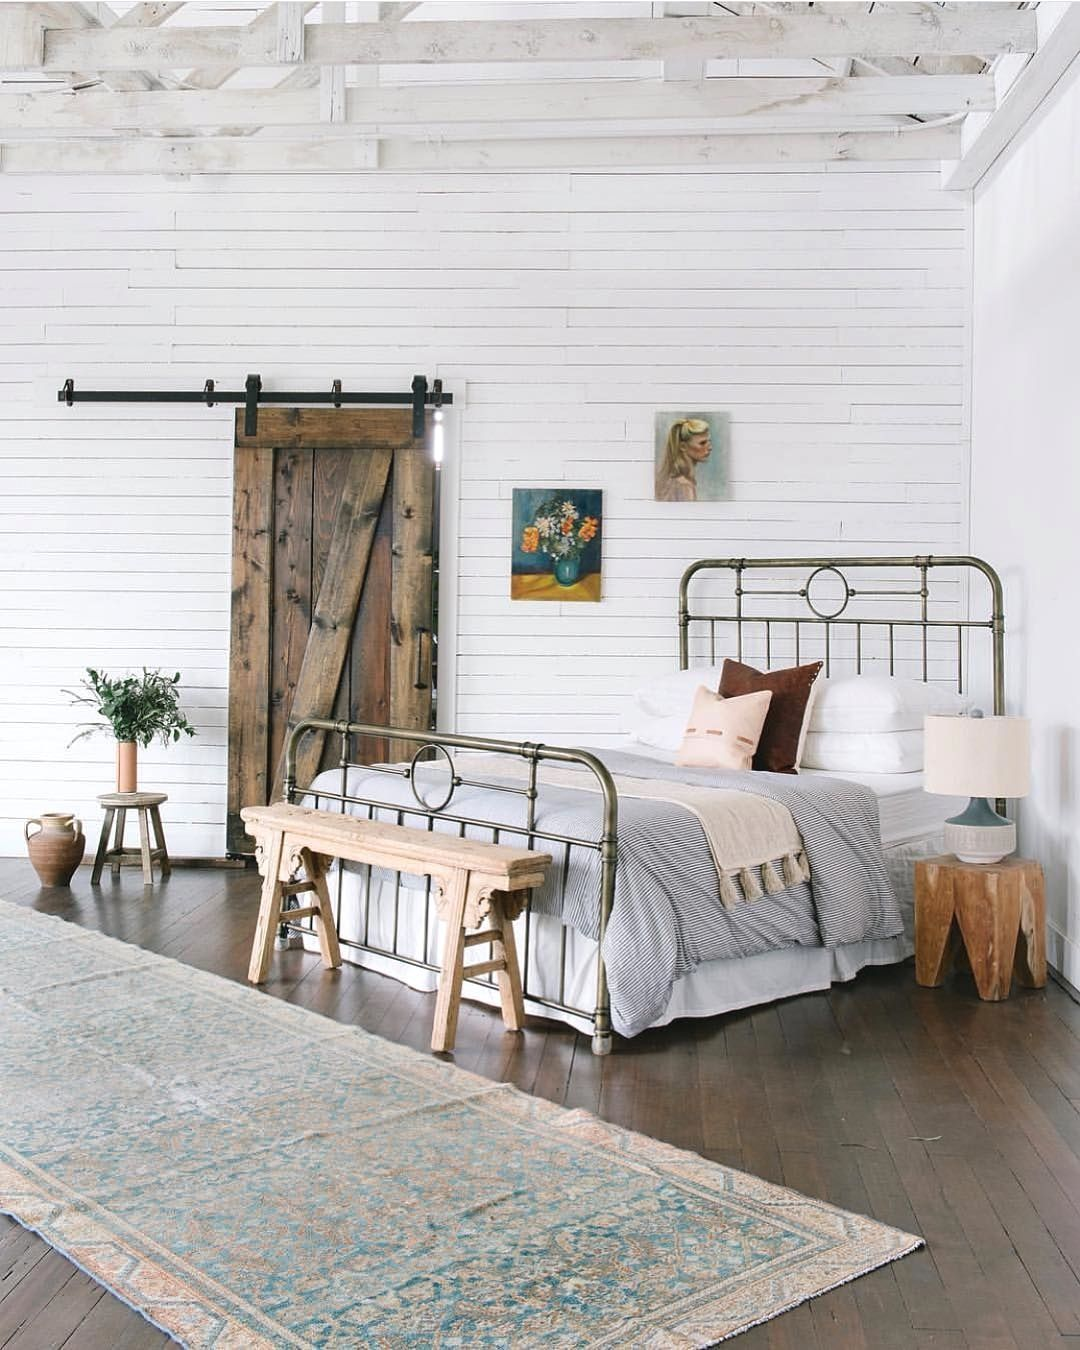 Such A Stunning Setup By Gorgeous Bed Frame And Lovely Rug